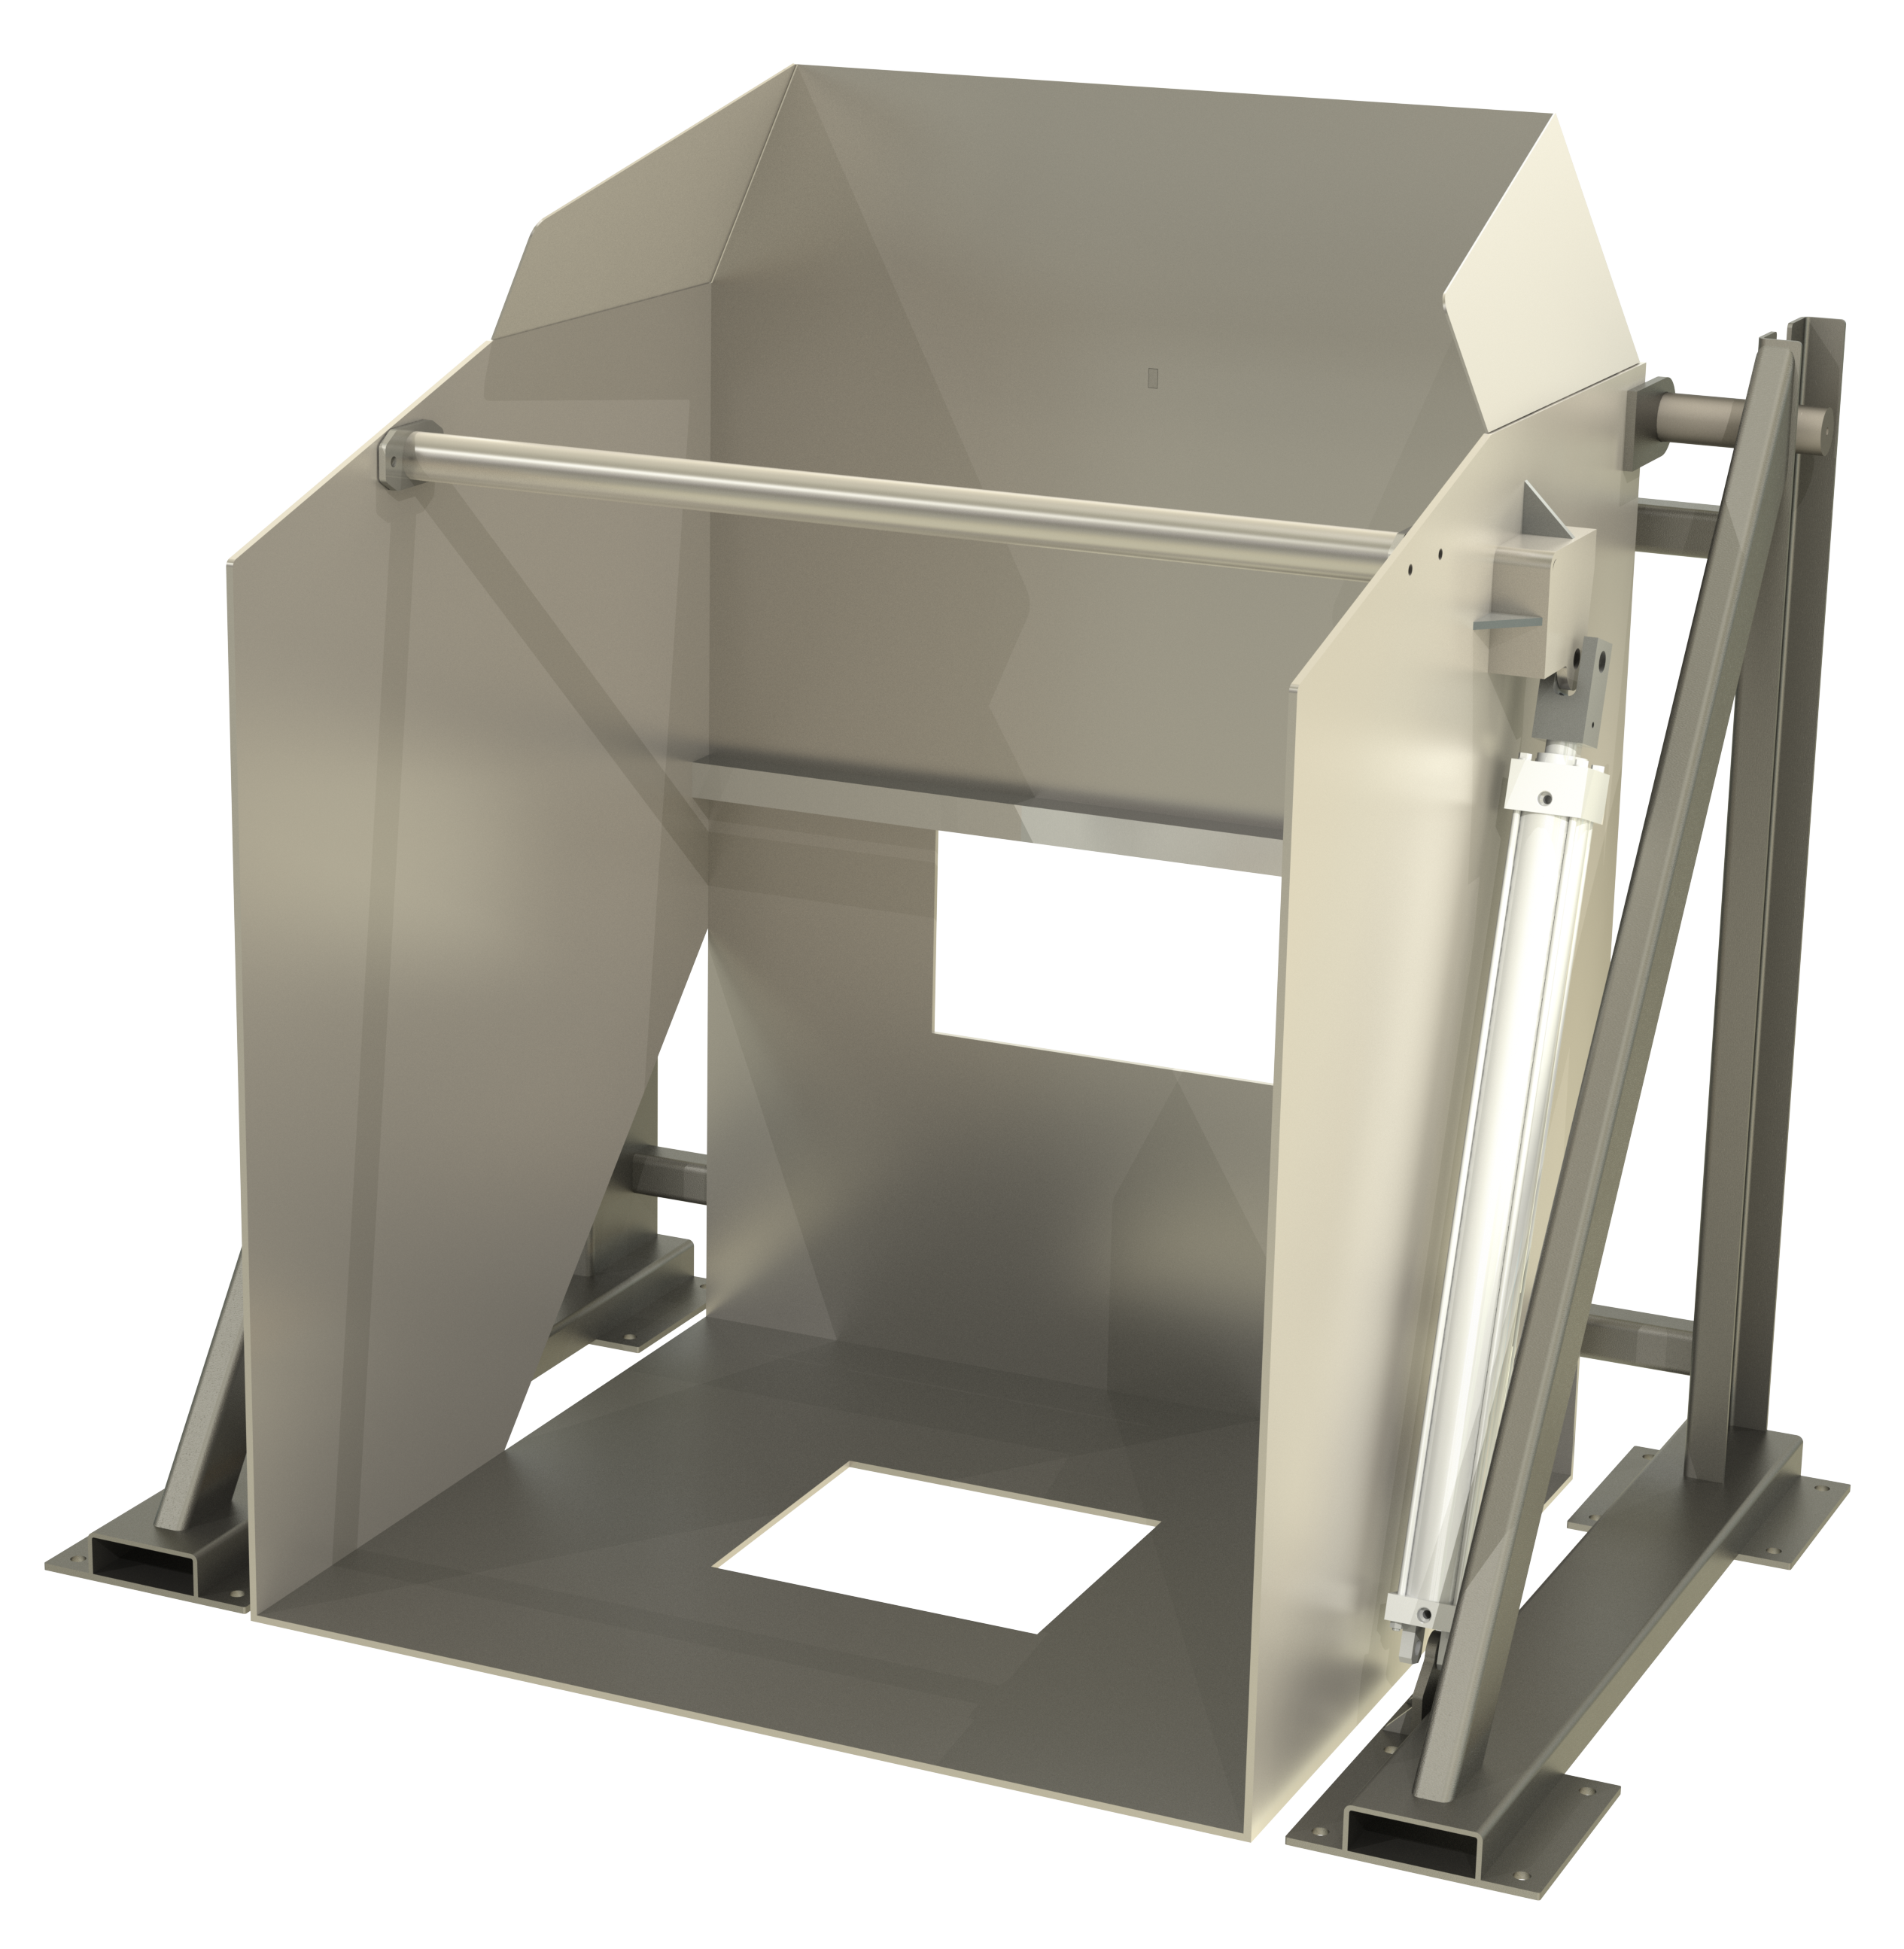 3D rendering of a stainless combo dump